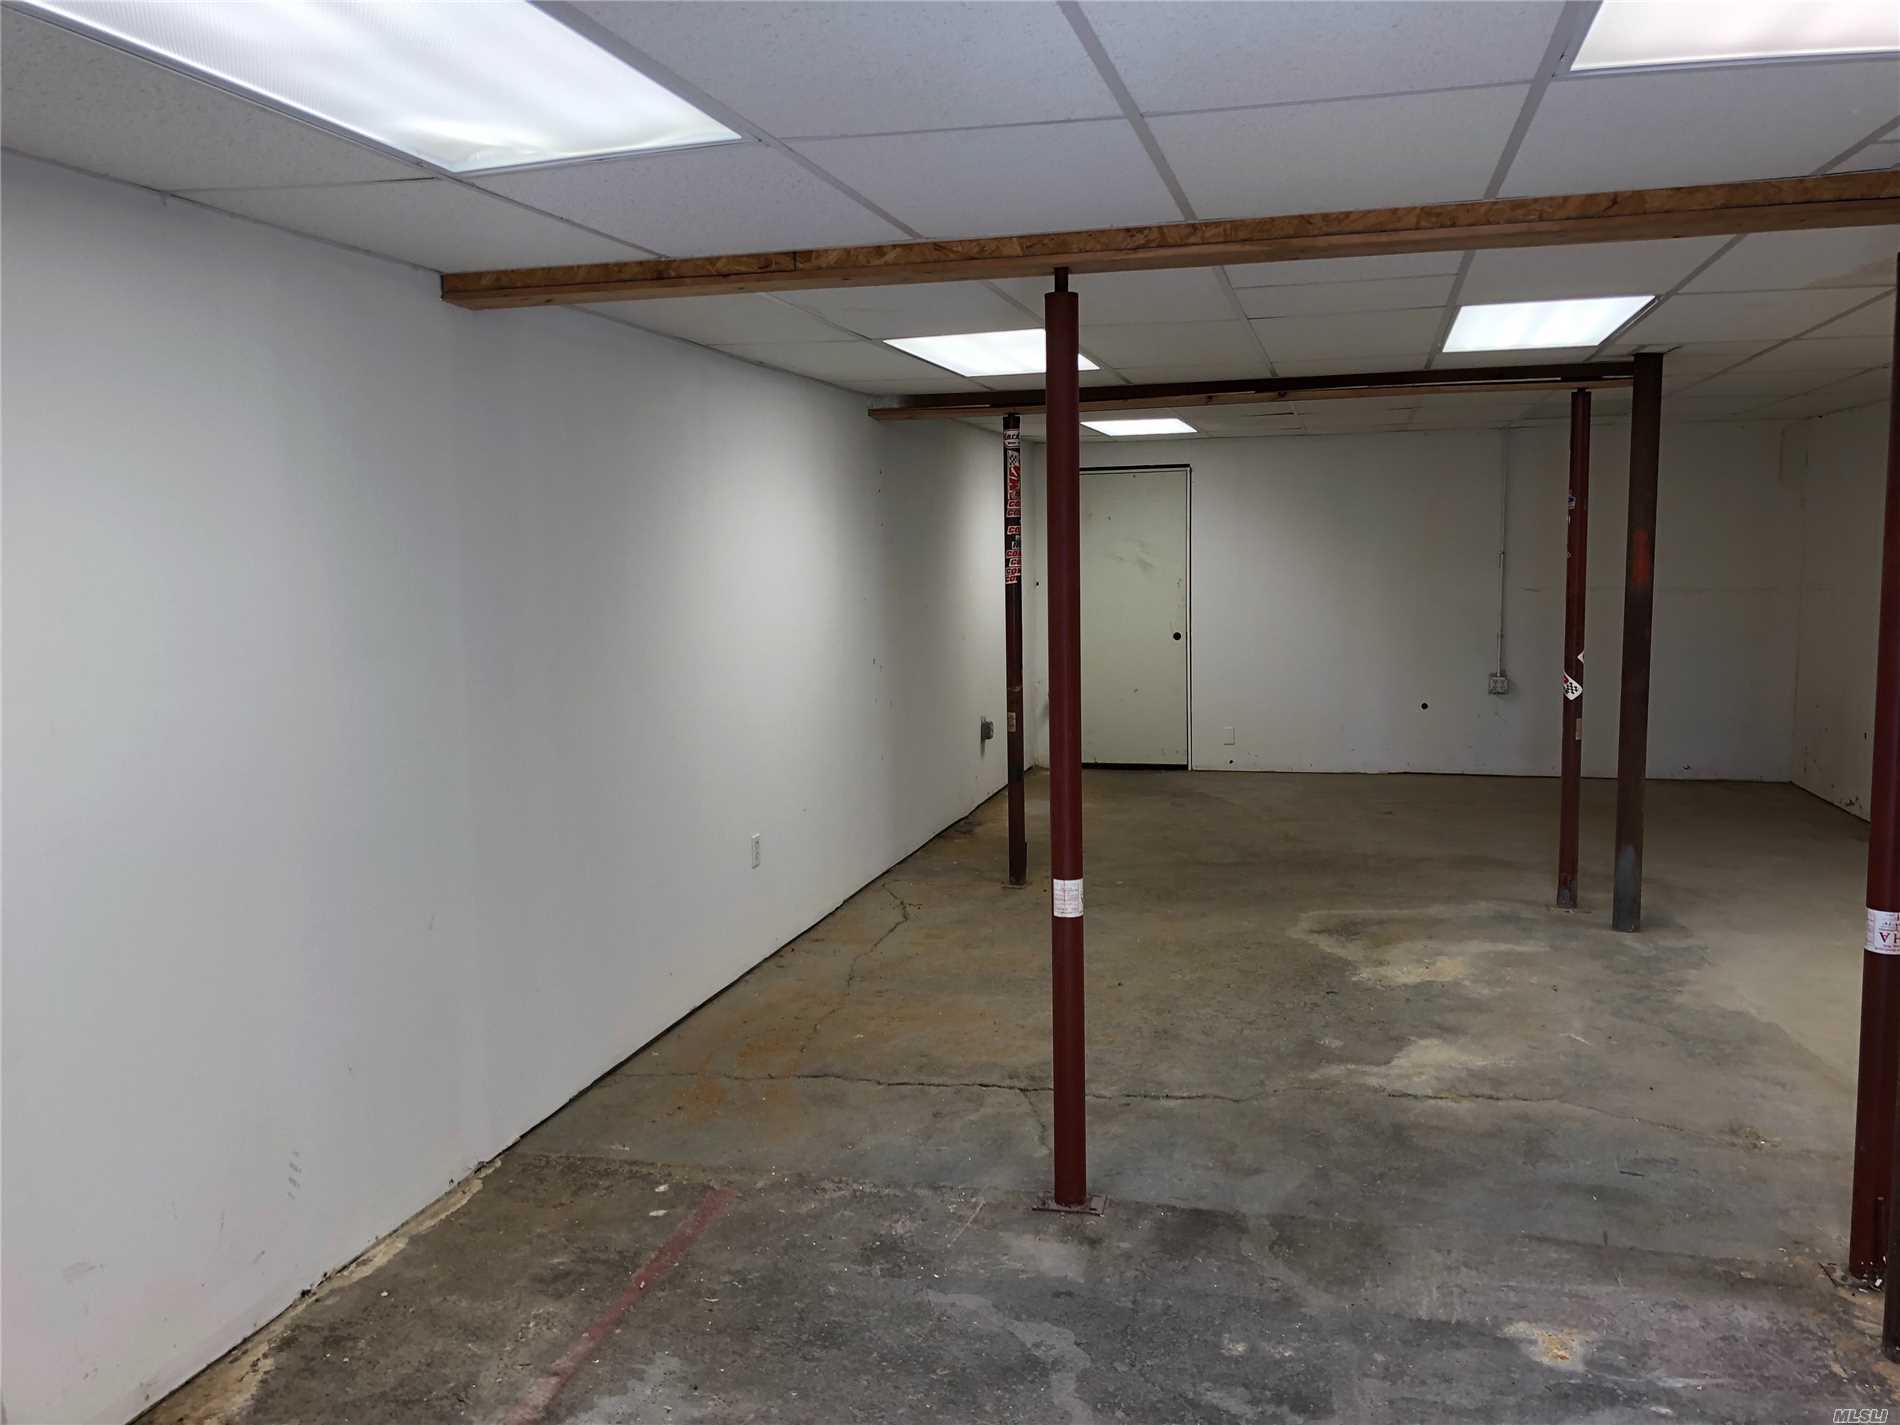 1000 Sq. Ft. Office Space........And 800 Sq. Ft. High Ceilings.....$1500.00 Rent Per Month..Central Air And Heat In The Office Space Half Bathroom Also.......Included Would Like For 3-5 Years